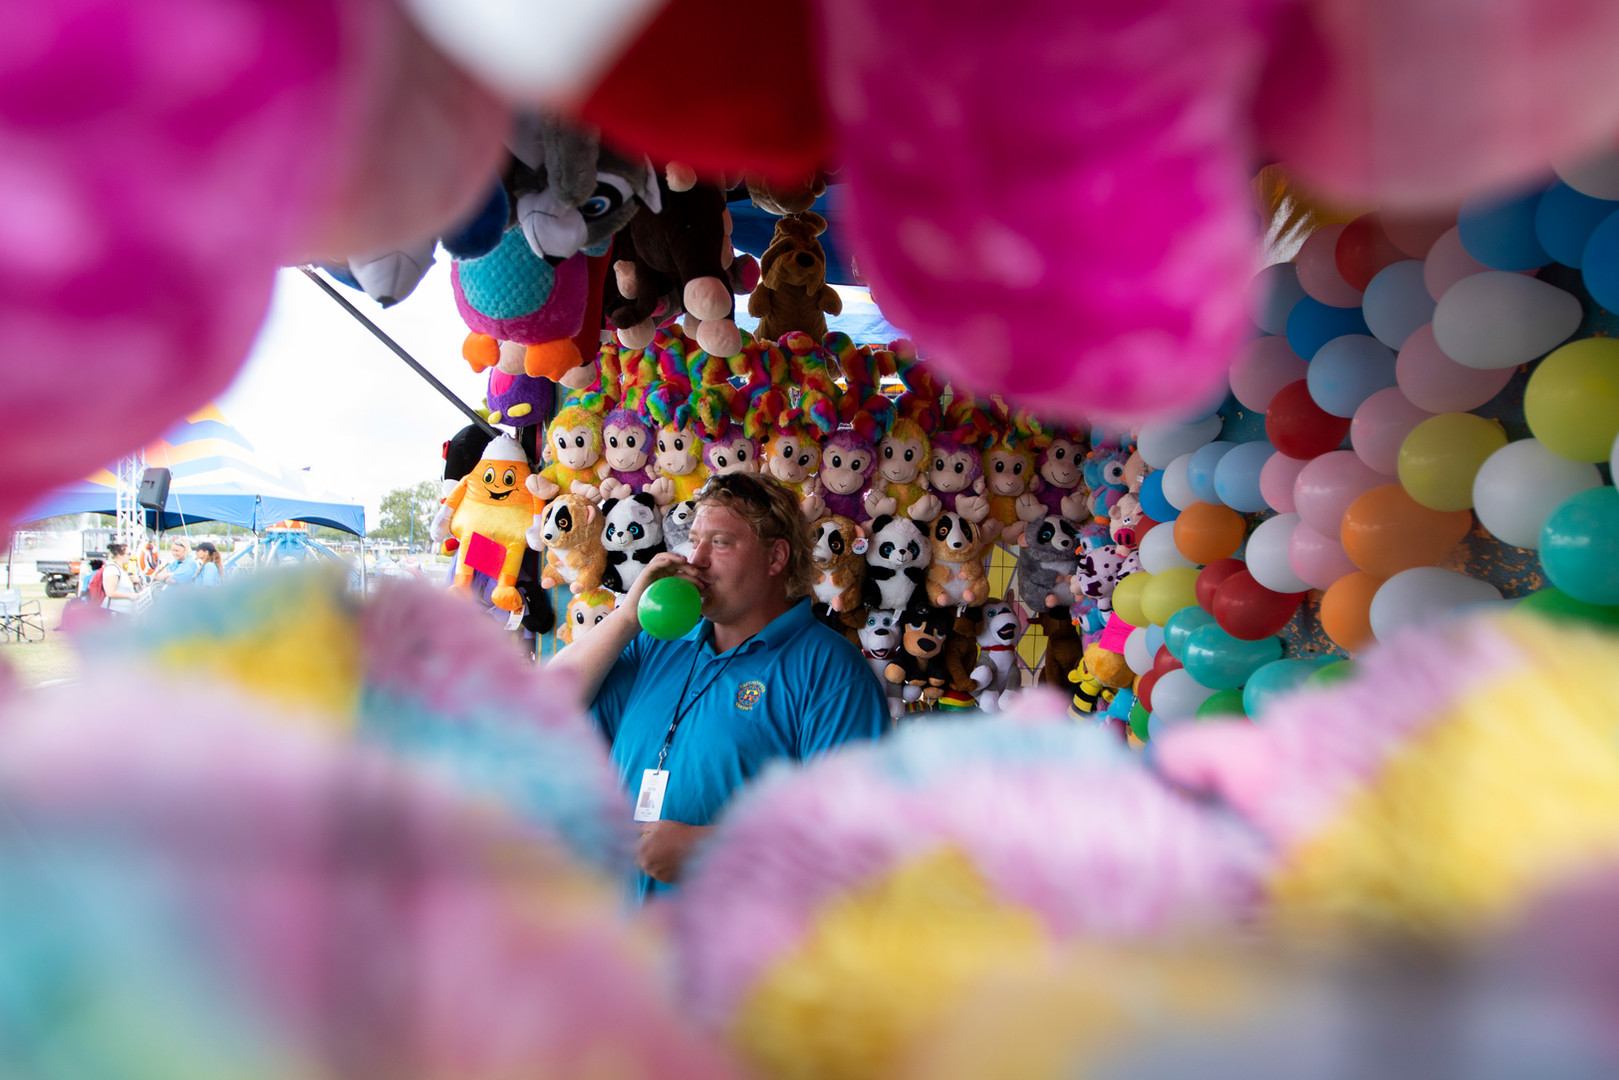 """Surrounded by walls of eye-catching stuffed animal prizes, Joe Kellems fills a balloon at the Georgia National Fair in Perry, Georgia on Saturday, Oct. 5, 2019. """"Let 'em play; I'll let 'em win,"""" Kellems yells to passing fairgoers with small children. This is Kellems's fifth year working as fair balloon agent, a job he describes as more than setting up a game booth and supervising players throughout the long working day, usually from 9 a.m. to 12 a.m. As an agent, Kellems says his role is to work the crowd and earn money while ensuring fairgoers have an enjoyable time without feeling taken advantage of. For Kellems, fair work is """"kind of in the blood."""" He follows in the footsteps of his father who works as a tub agent running a booth where fairgoers attempt to throw a ball into a tilted tub. Over the years, Kellems has perfected the art of playing his father's notoriously difficult tub game and has won several playstations at various fairs. While Indiana is Kellems's home base, he travels to fairs all around the county and says the New Mexico State Fair in Albuquerque is his favorite to work."""